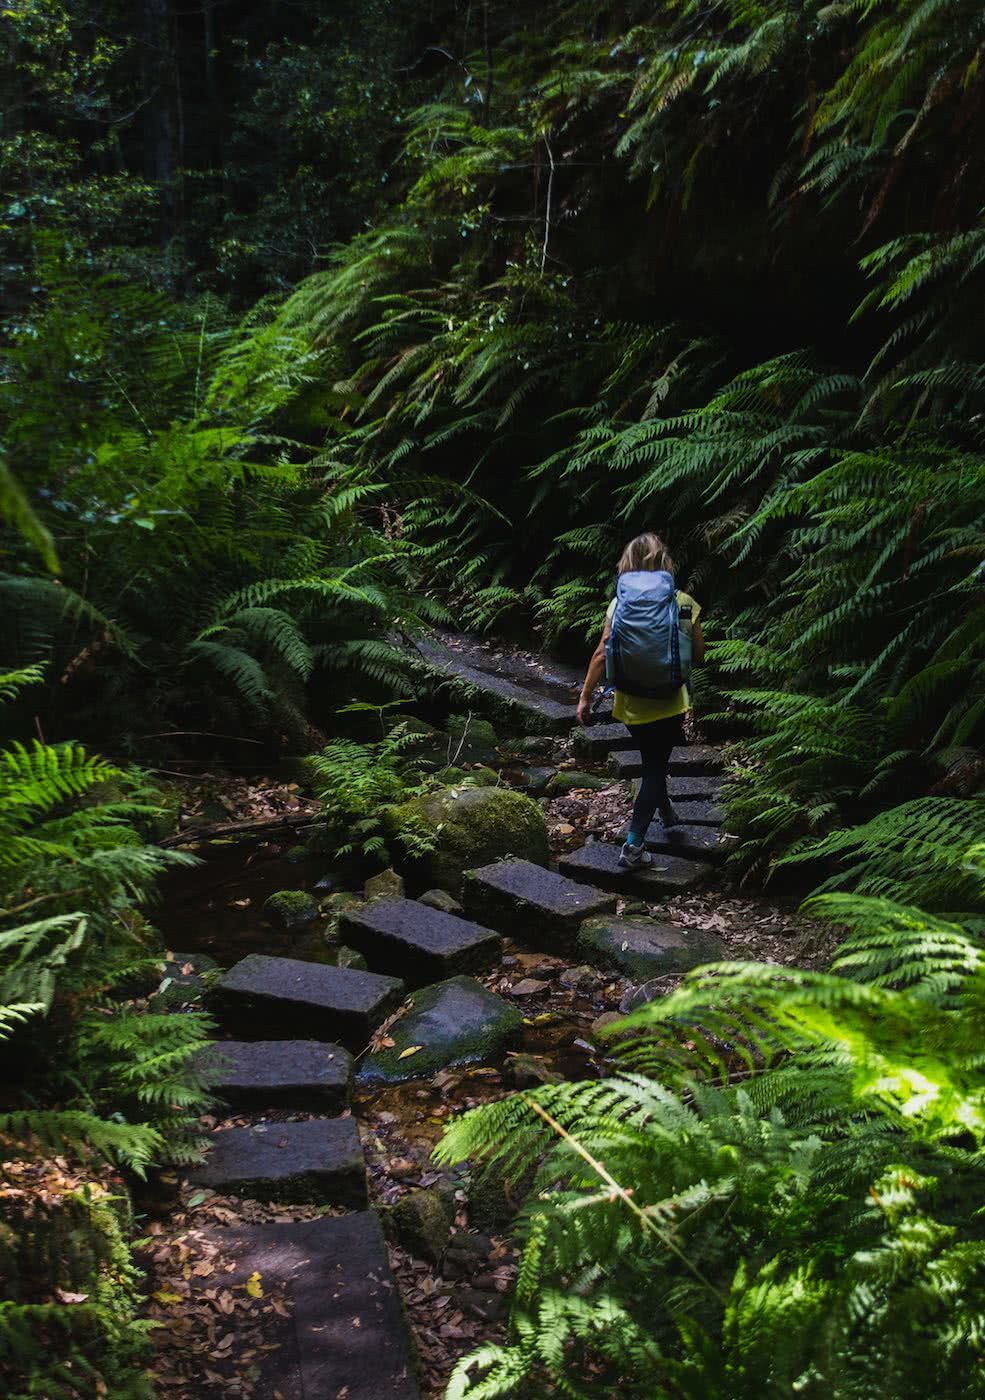 Escape From The Urban // Blackheath To Acacia Flat (NSW), Matt n Kat Pearce, Kat winding path, stepping stones, ferns, hiker, backpack, trail